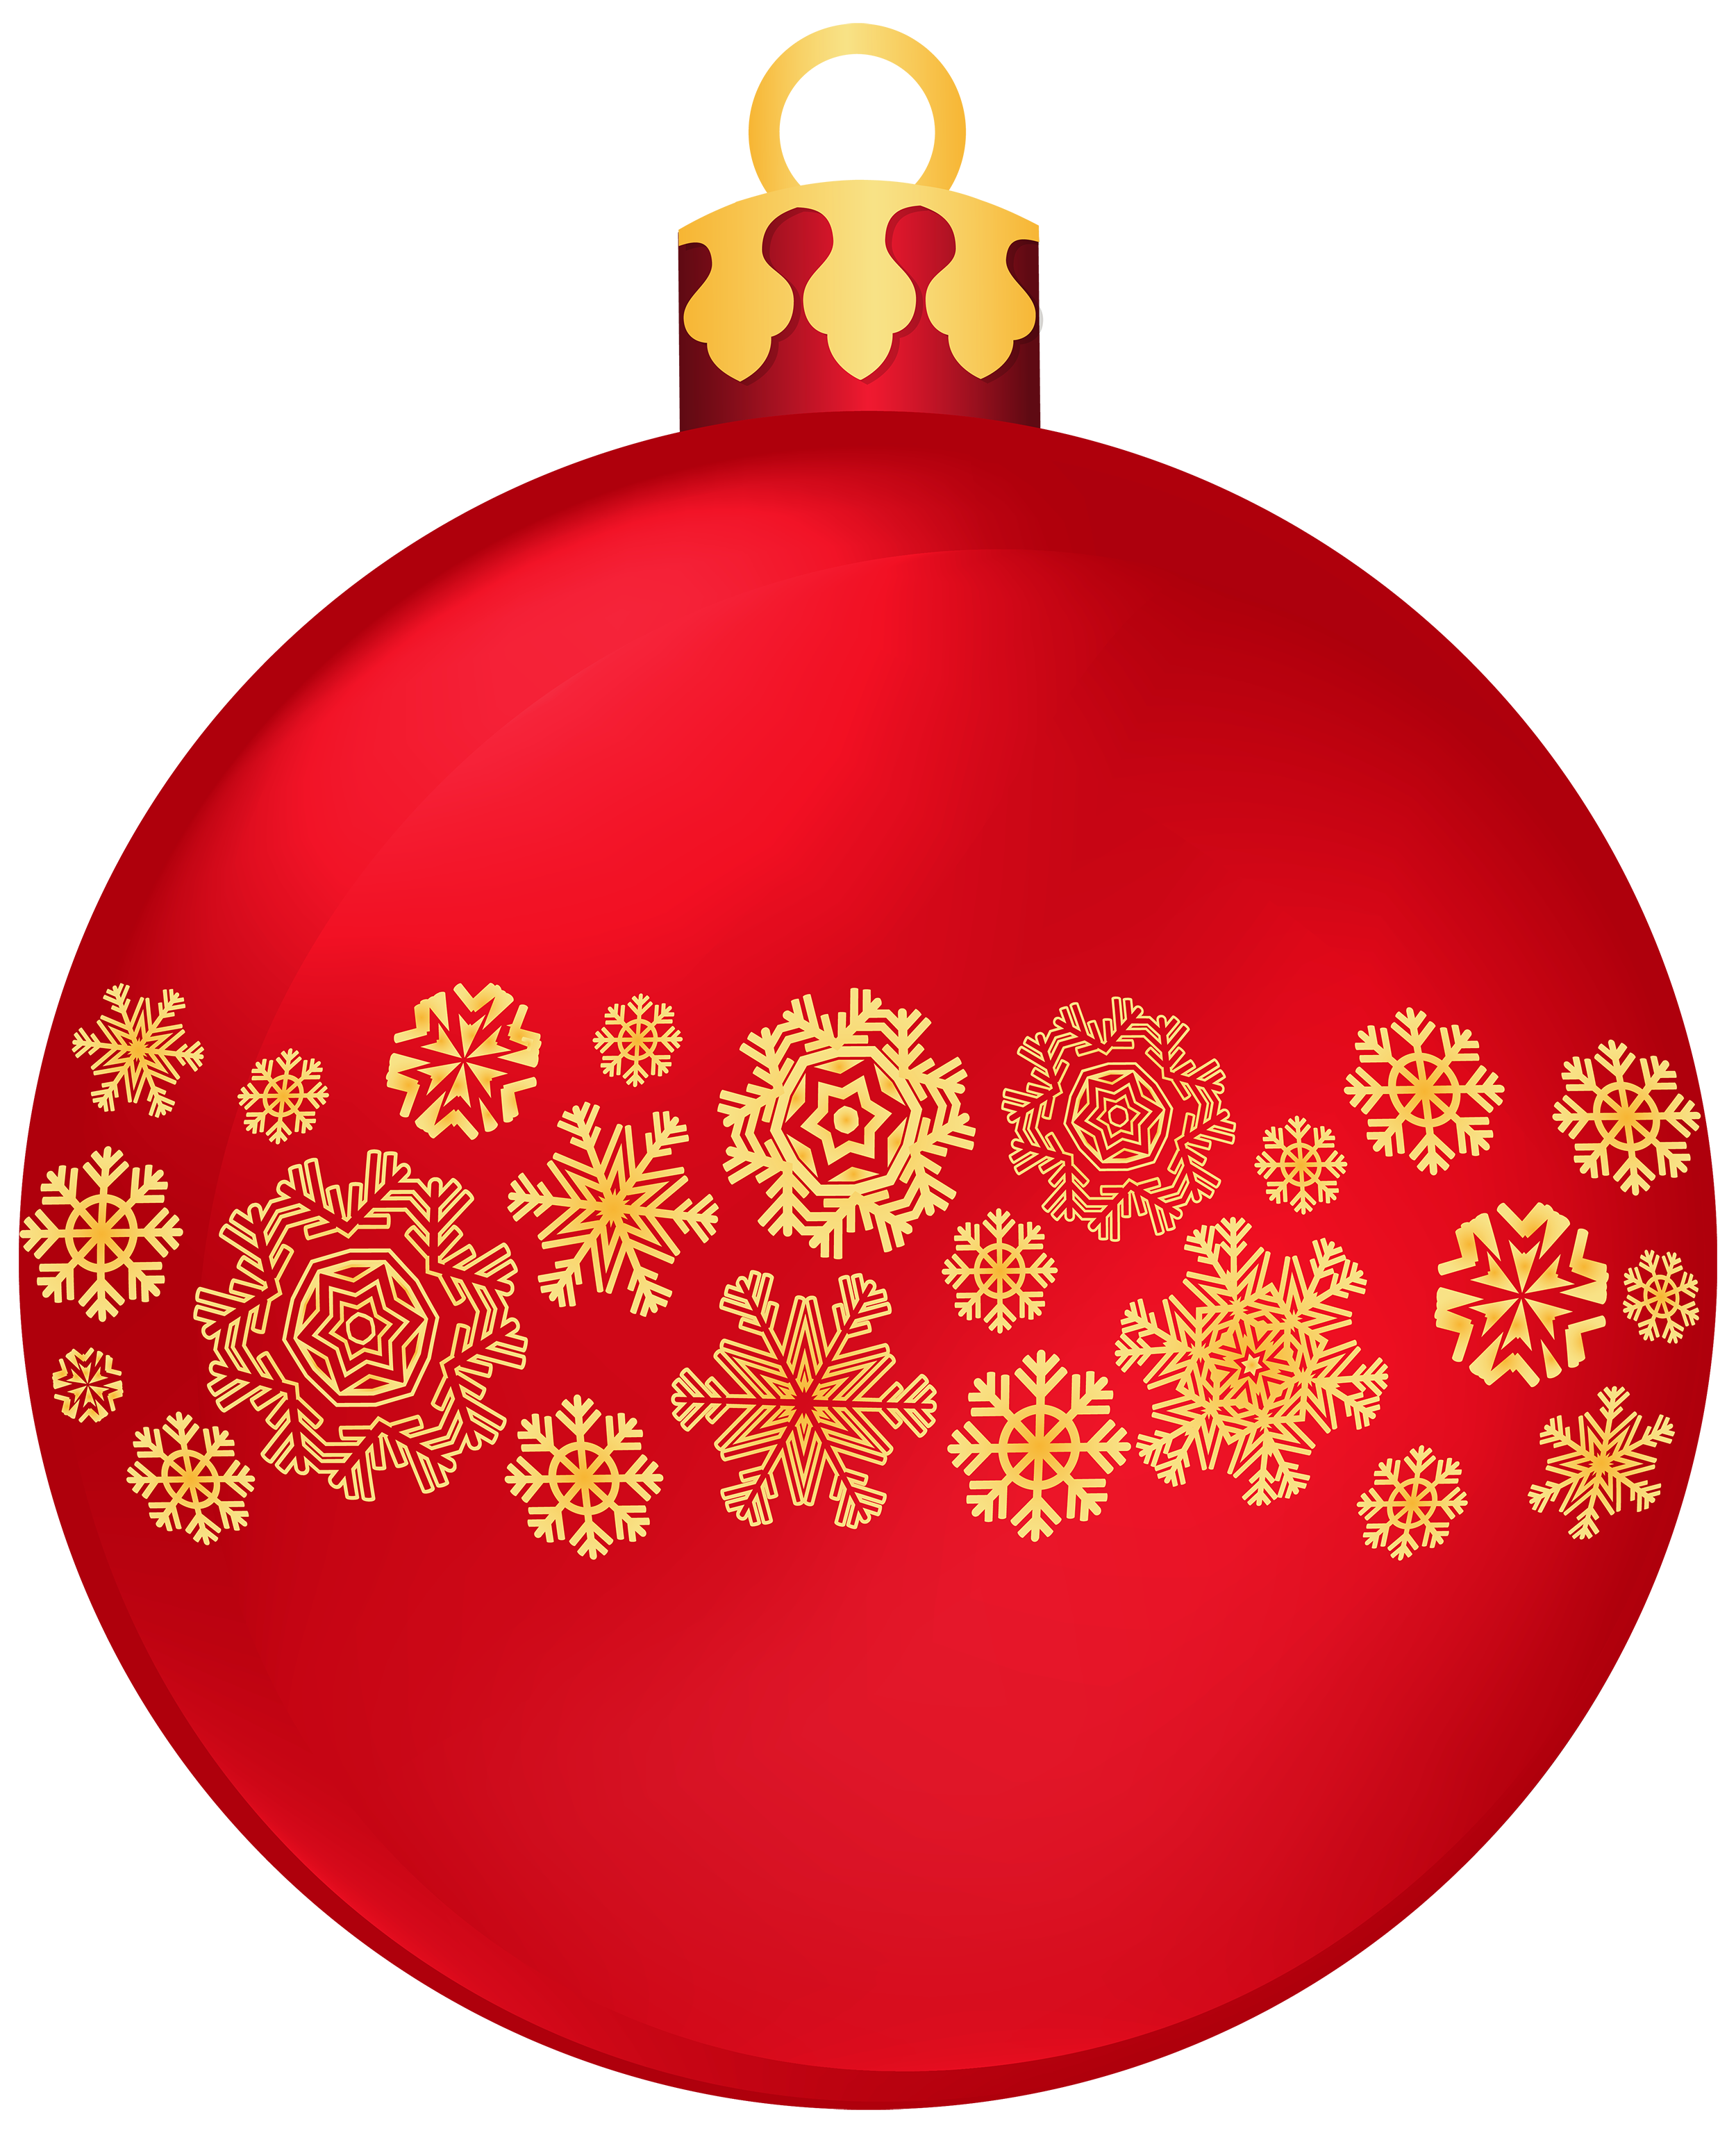 Snowflake clipart t jpg royalty free Red Christmas Ball with Snowflakes PNG Clipart - Best WEB Clipart jpg royalty free